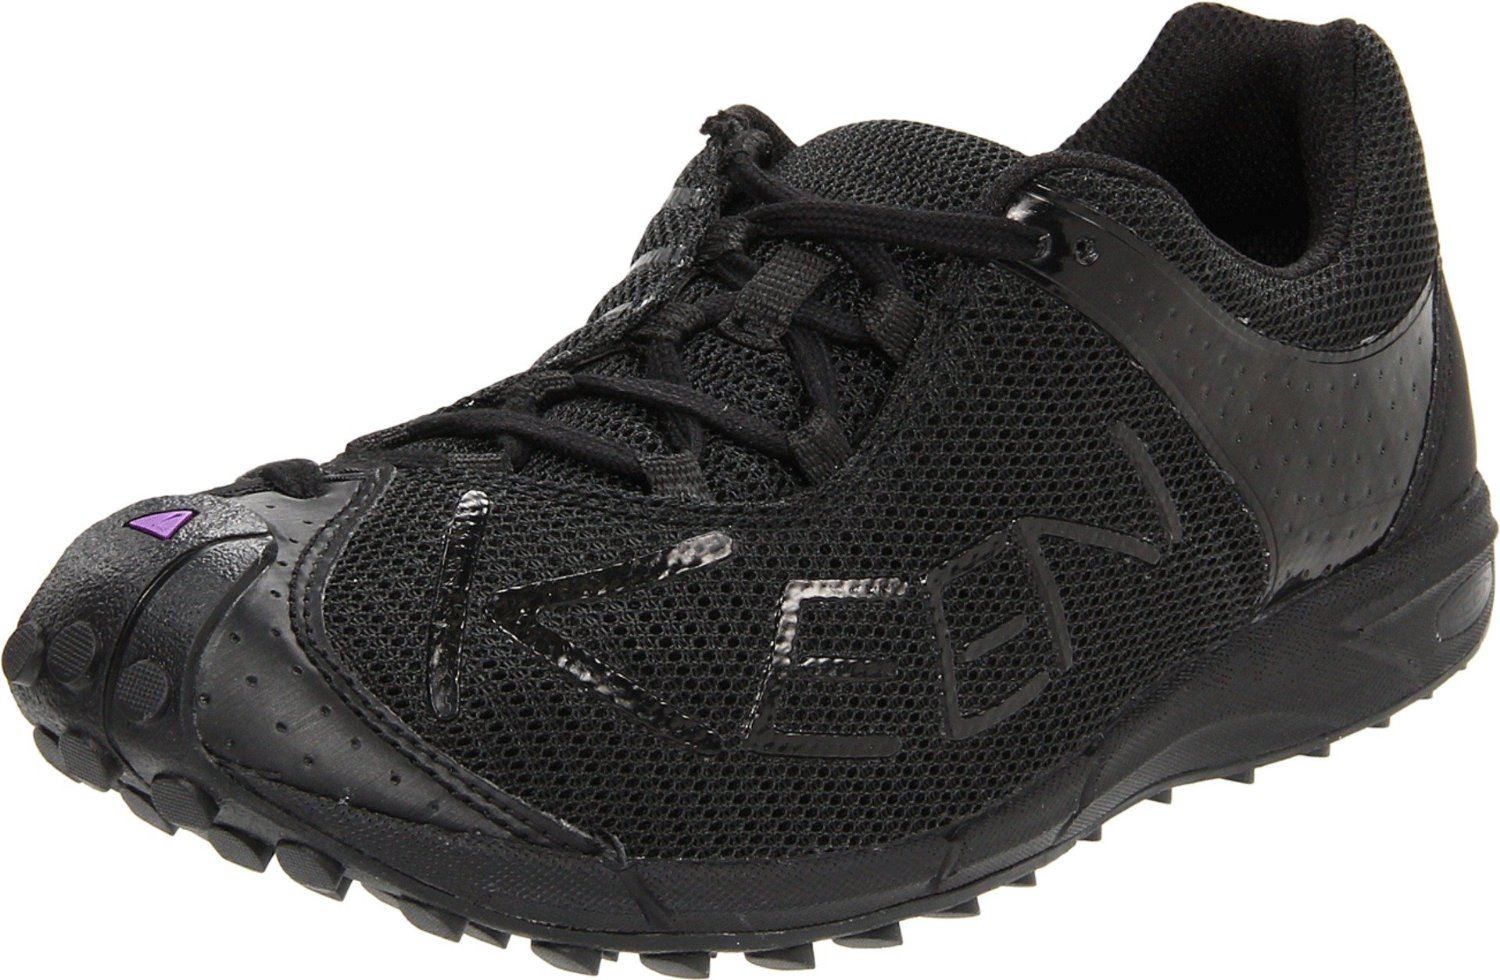 Keen Trail Running Shoe in Black (black/purple heart) | Lyst